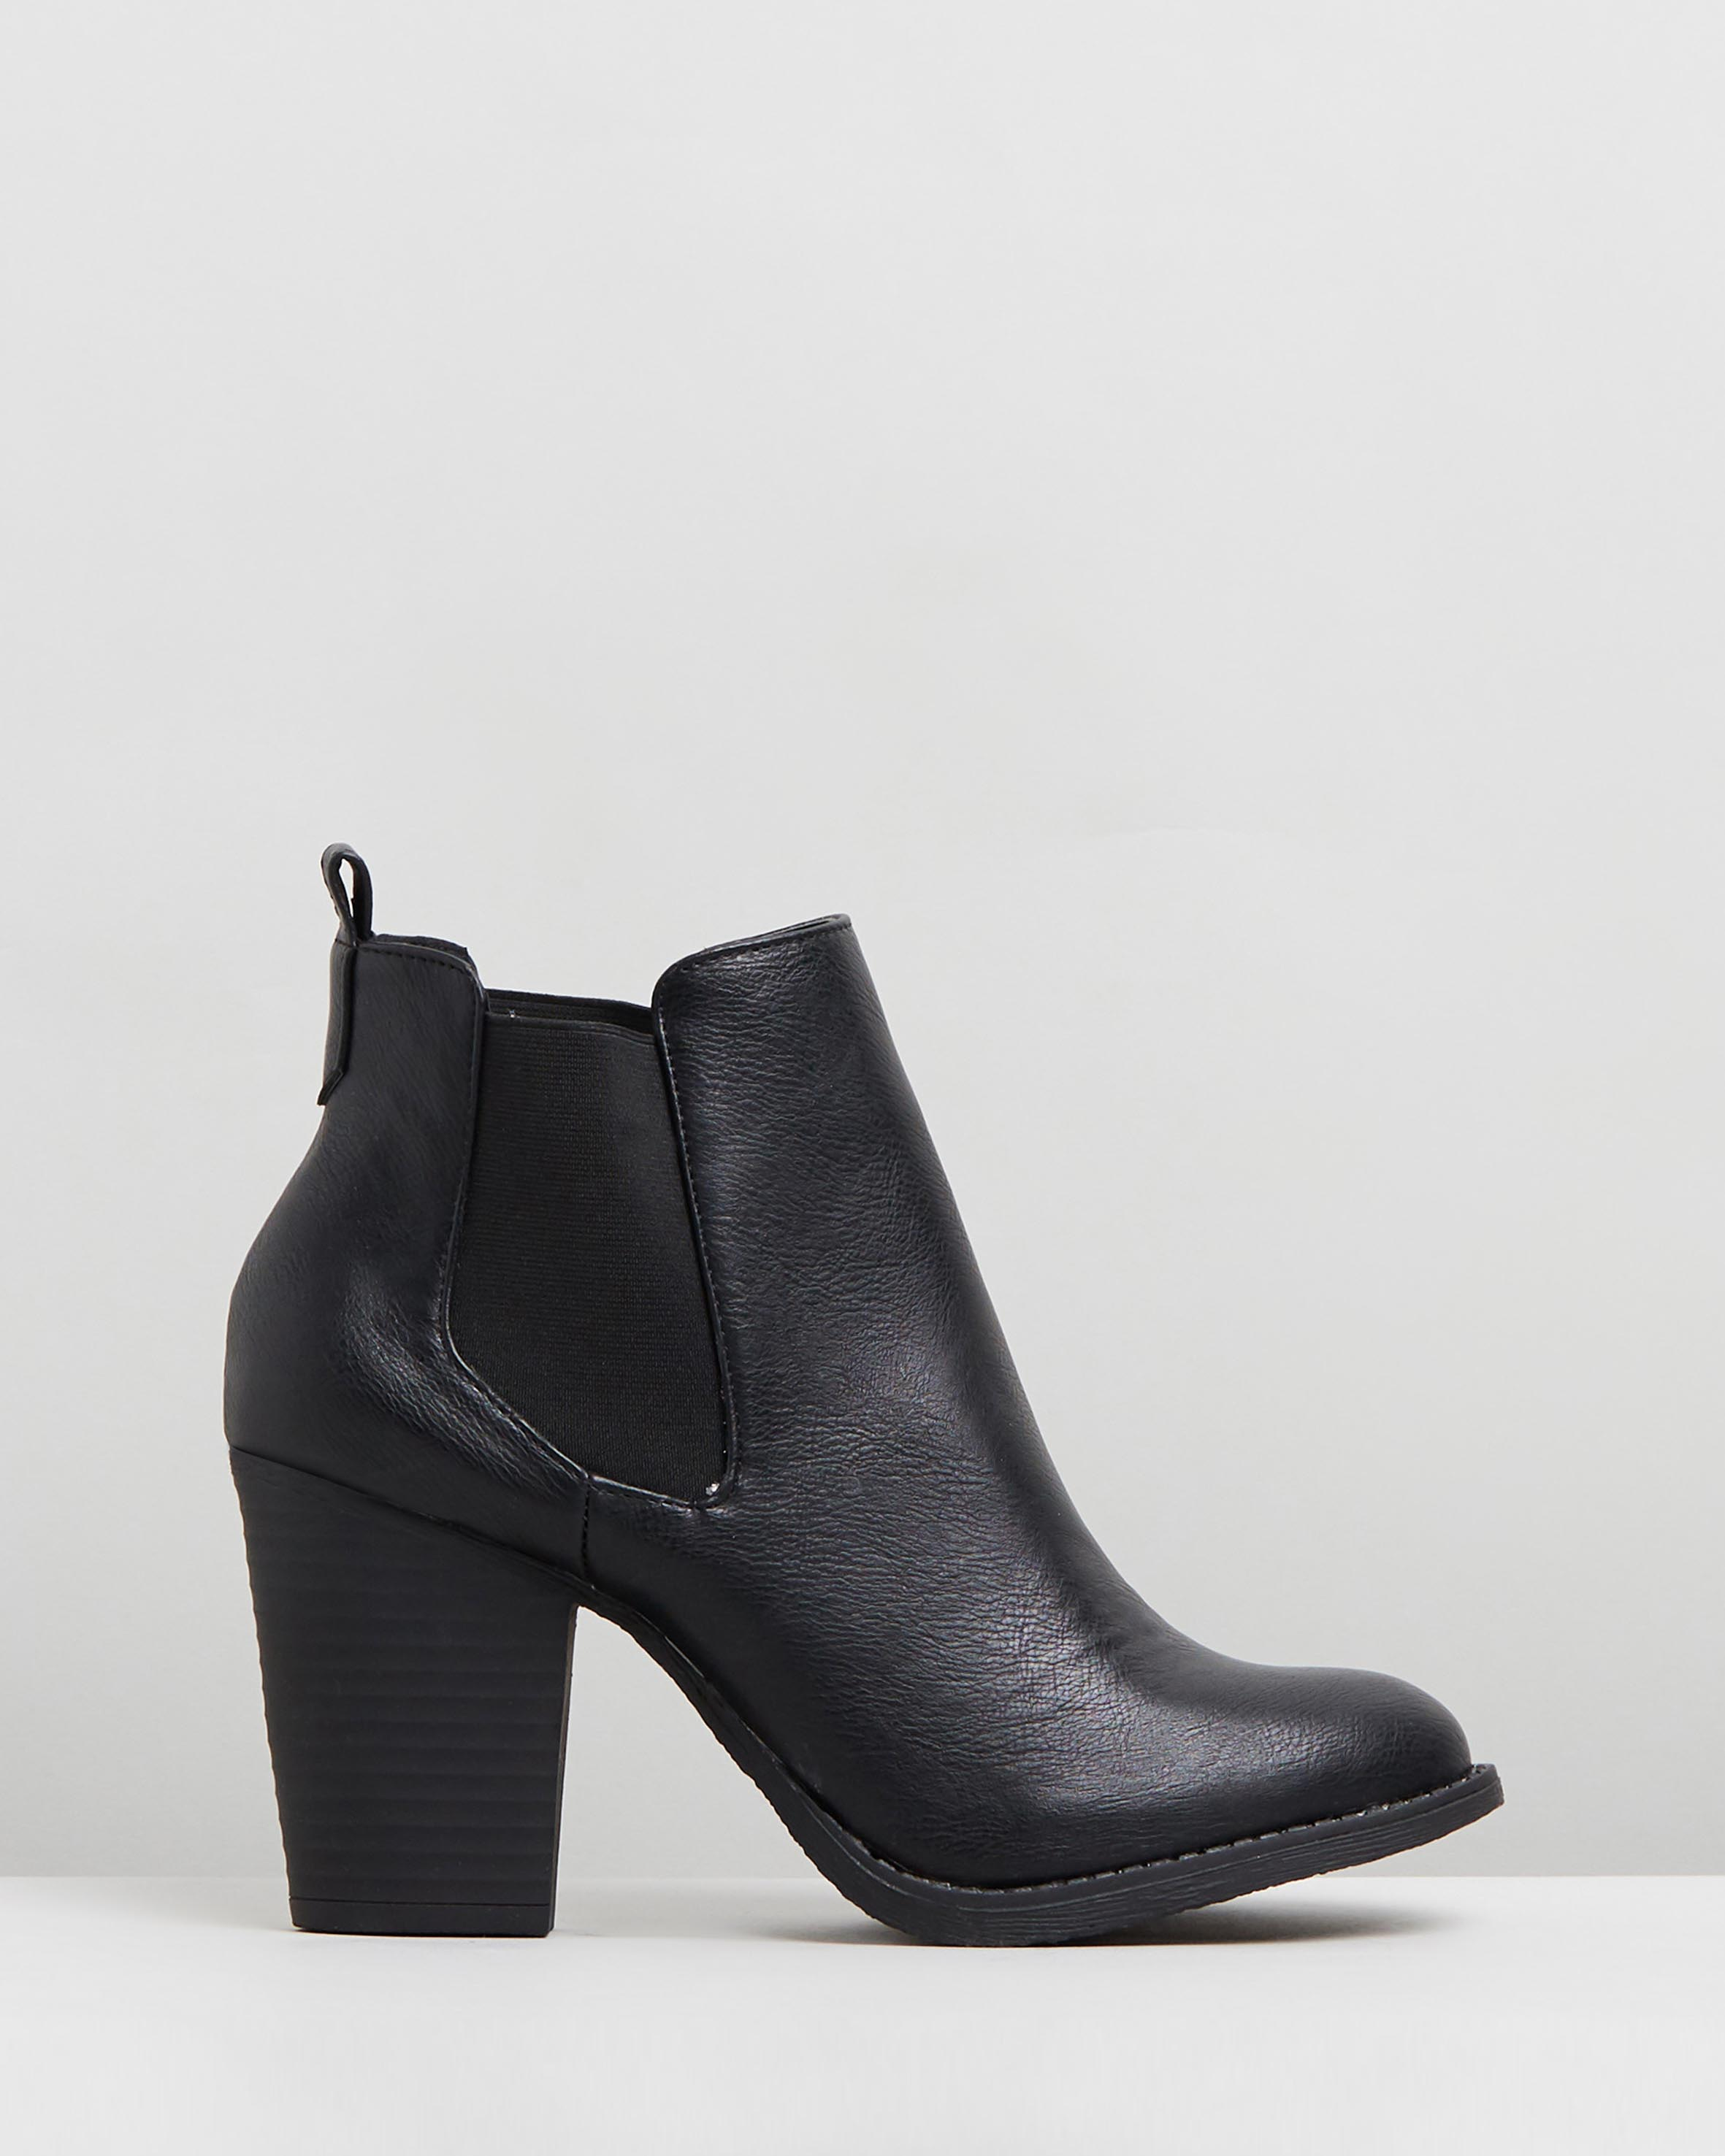 Cheap Heels For Sale Online